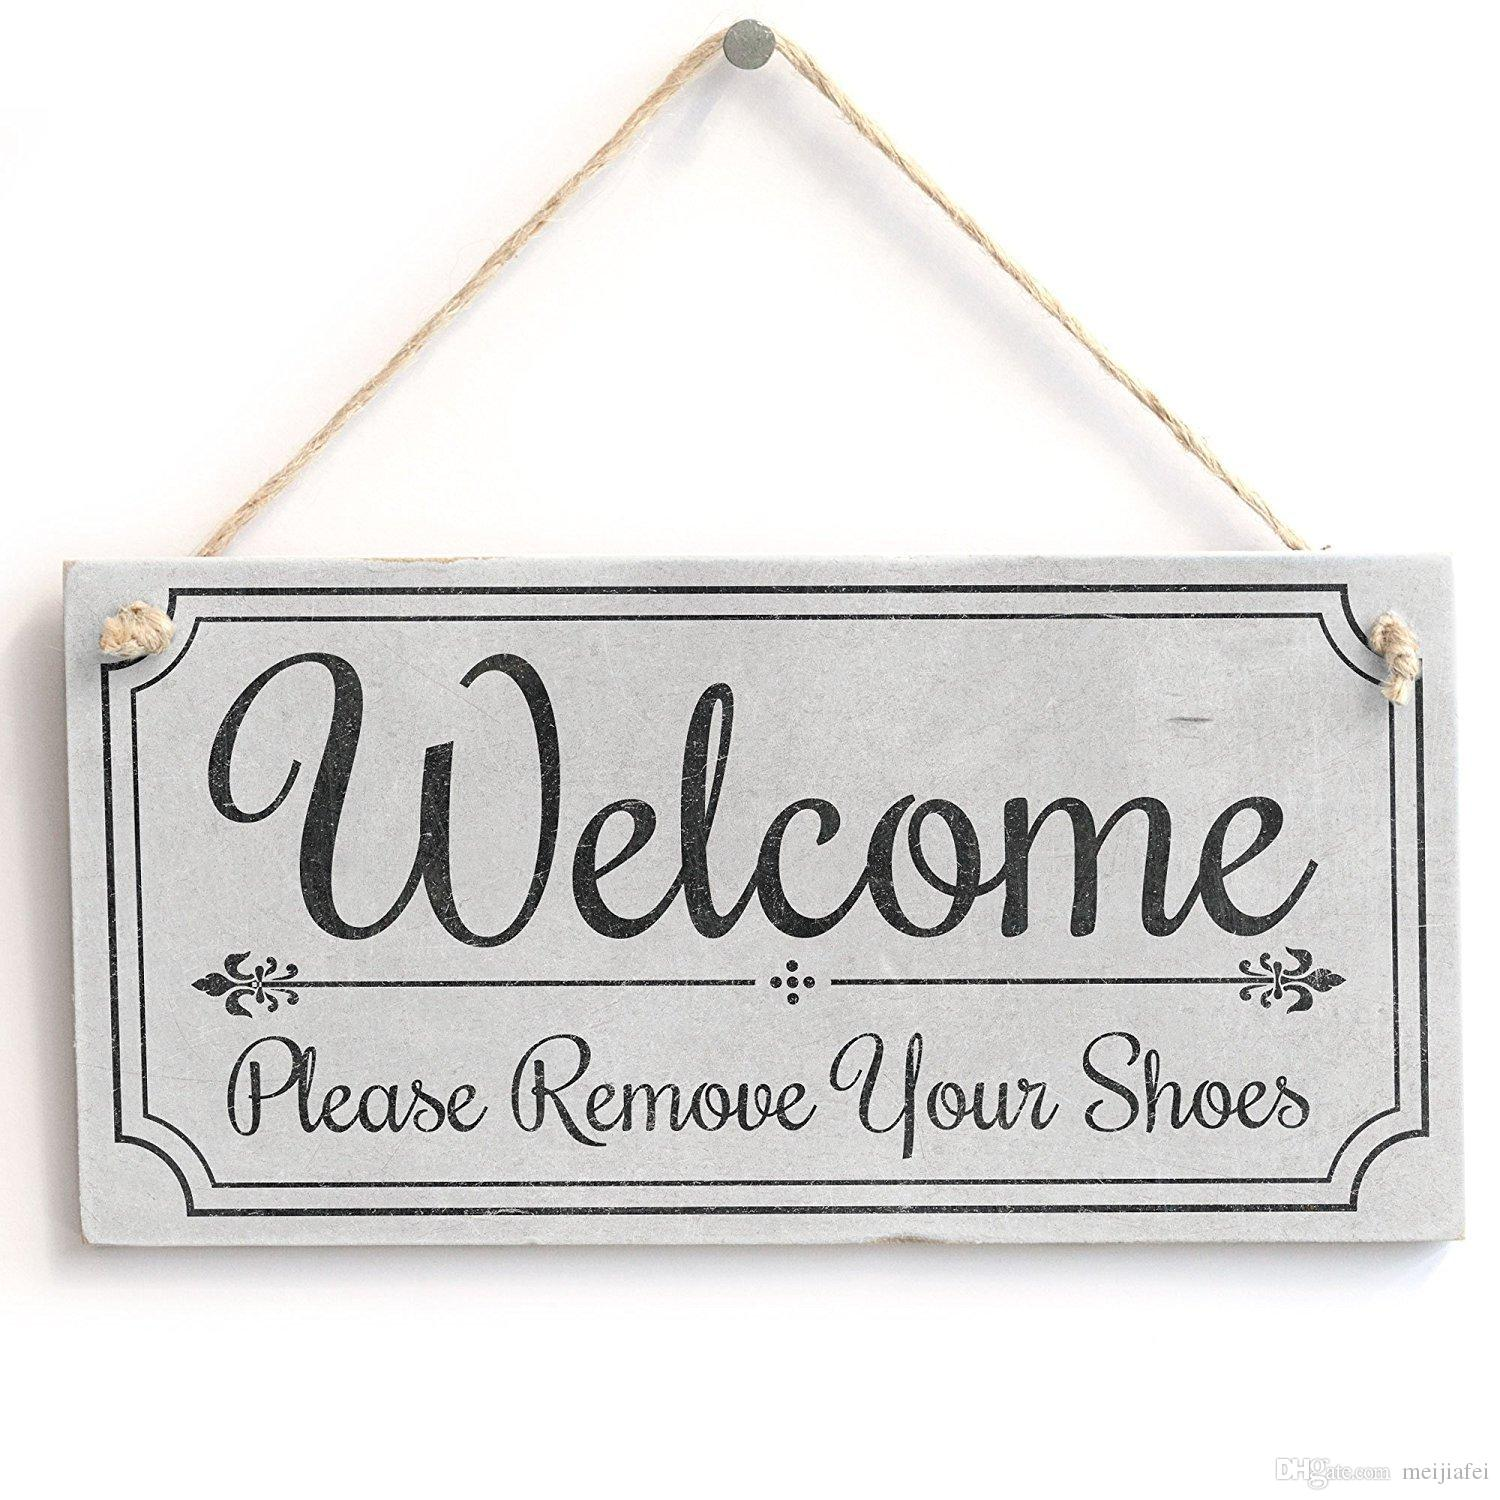 photo regarding Please Remove Your Shoes Sign Printable Free identify Meijiafei Welcome Remember to Clear away Your Sneakers - Adorable Welcome Indicator - Classic PVC Doorway Indicator Plaque 10 x5